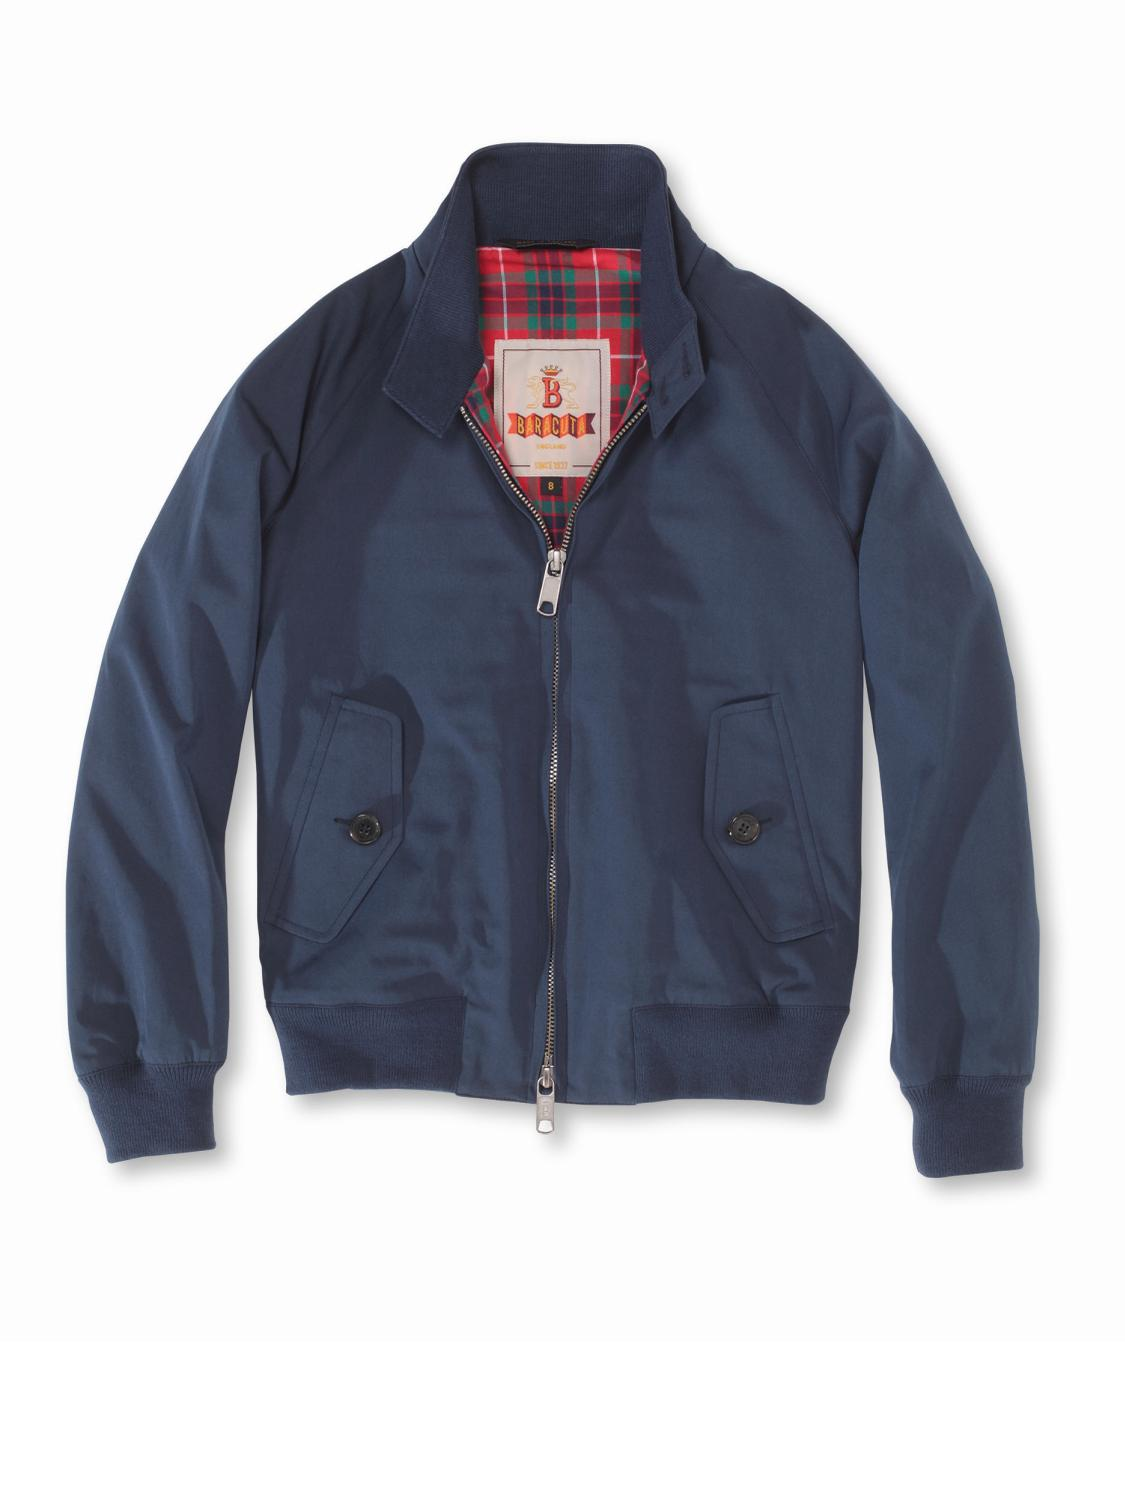 Baracuta - G9 - Harington Jacket - Navy - The Original - Regent Tailoring